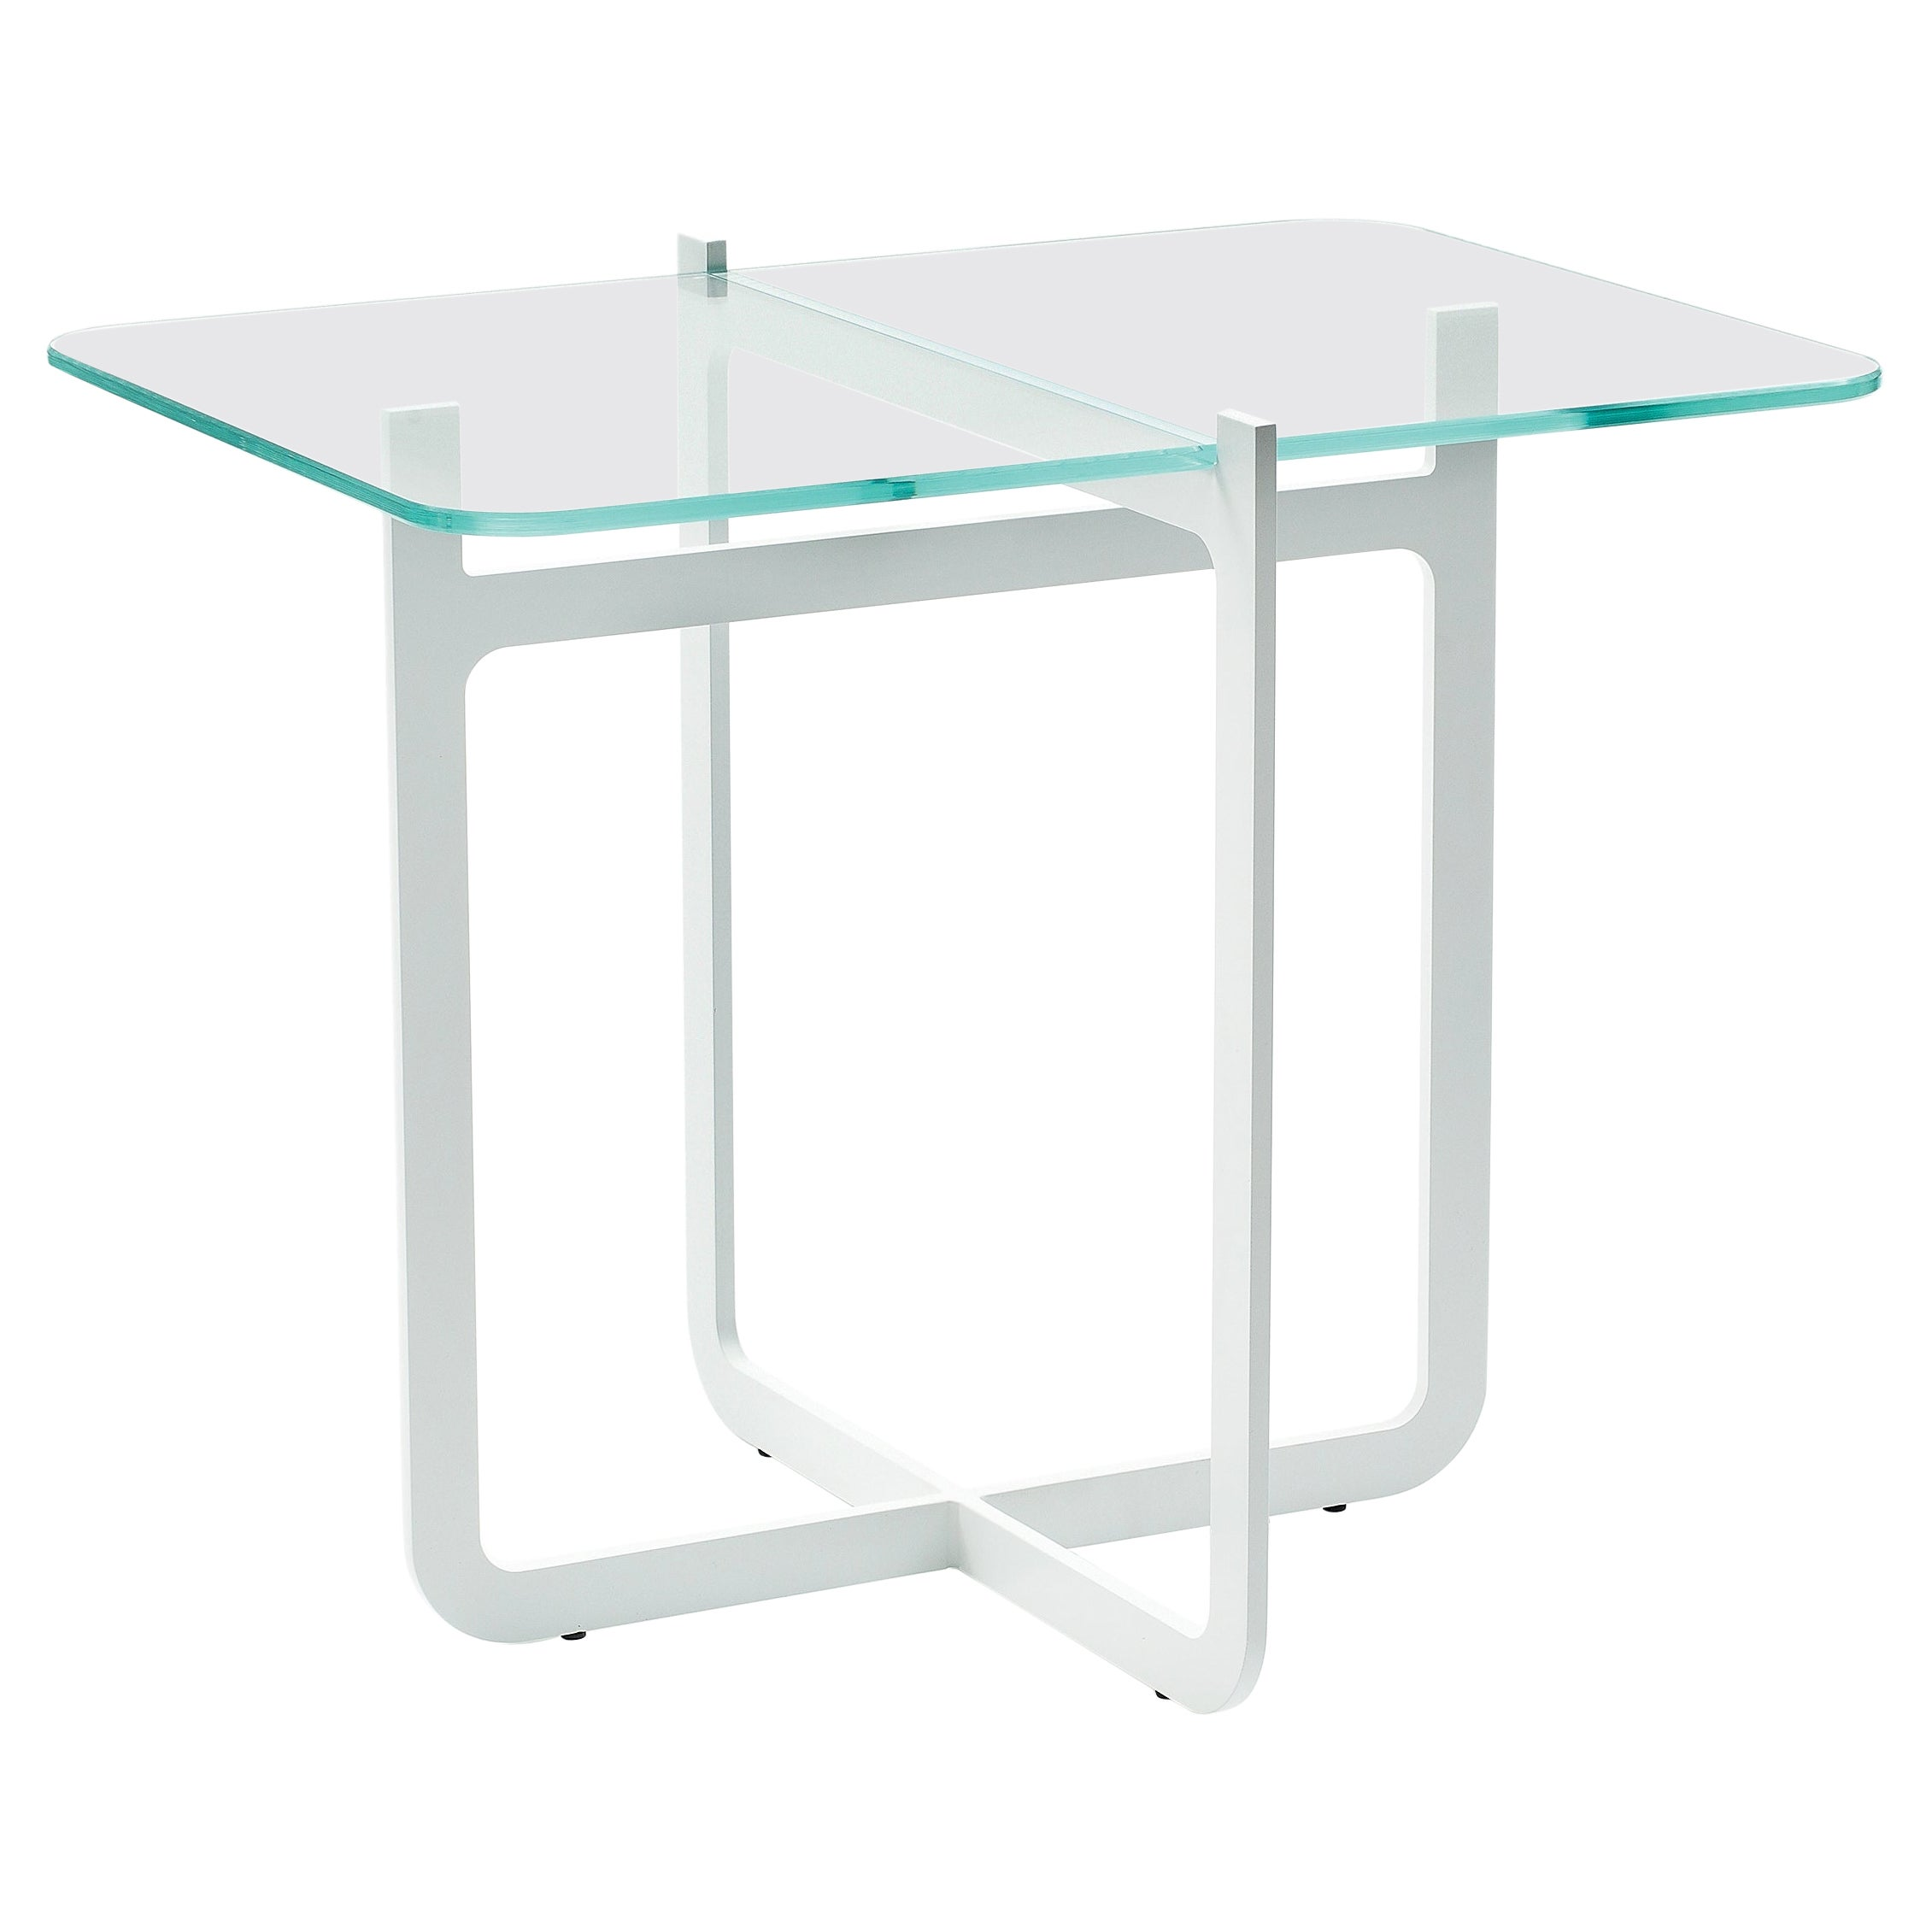 Clip Coffee Table High, Welded Lacquered Metal and Glass by Nendo